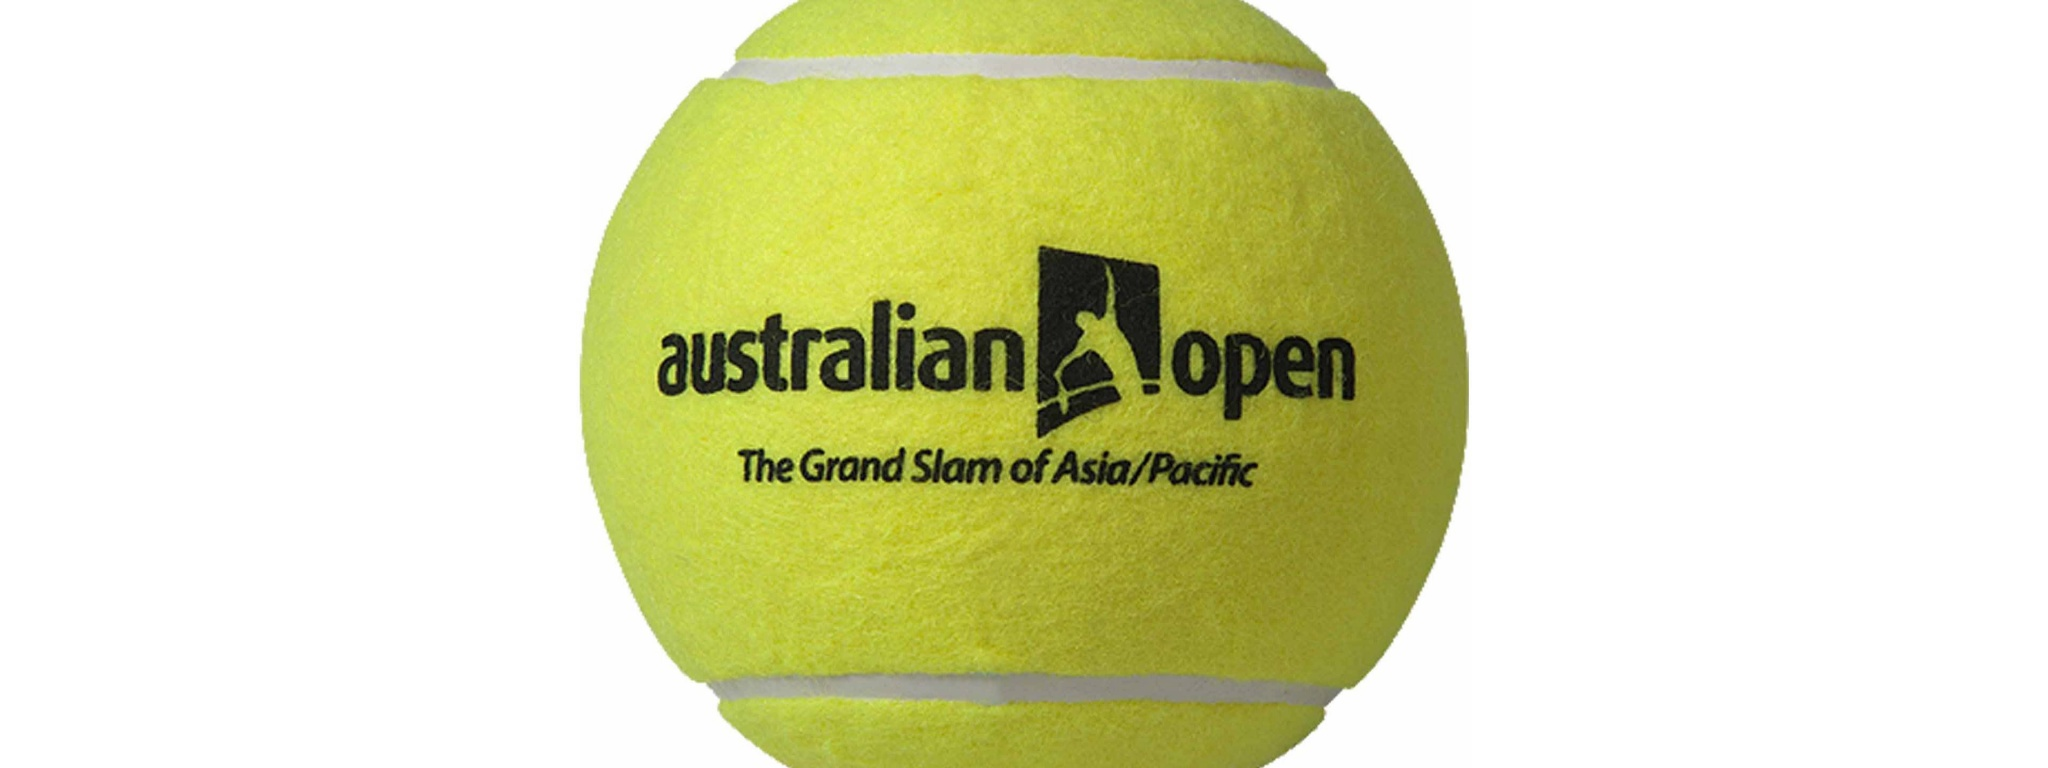 Australian Open 2015 Tennis Ball